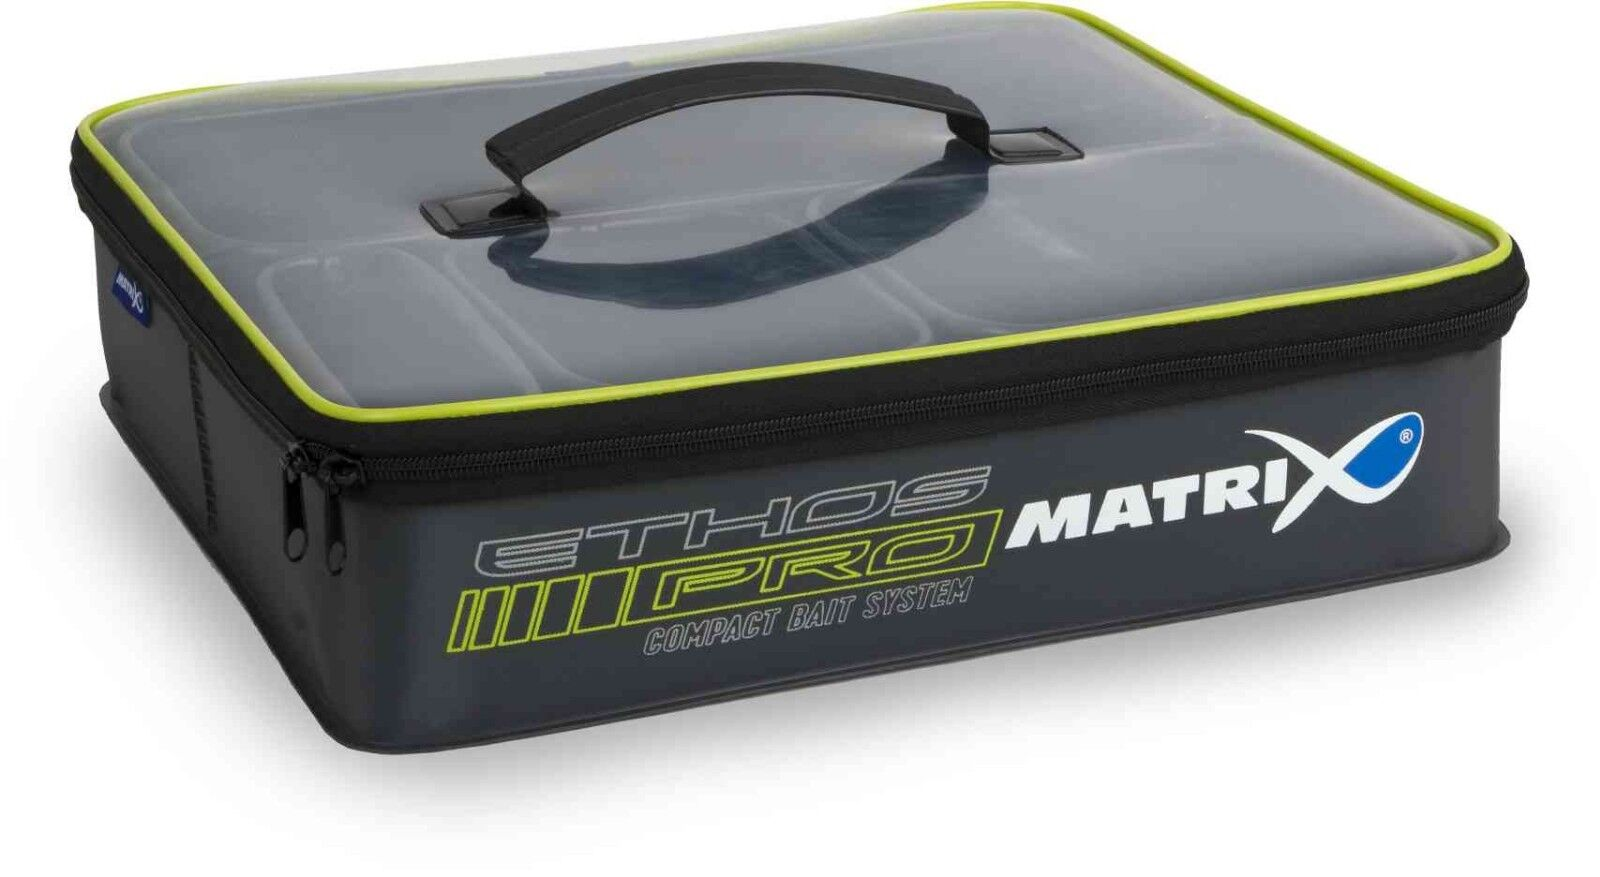 Matrix Ethos Pro Matrix Compact Bait System  Waterproof EVA  material.  outlet sale